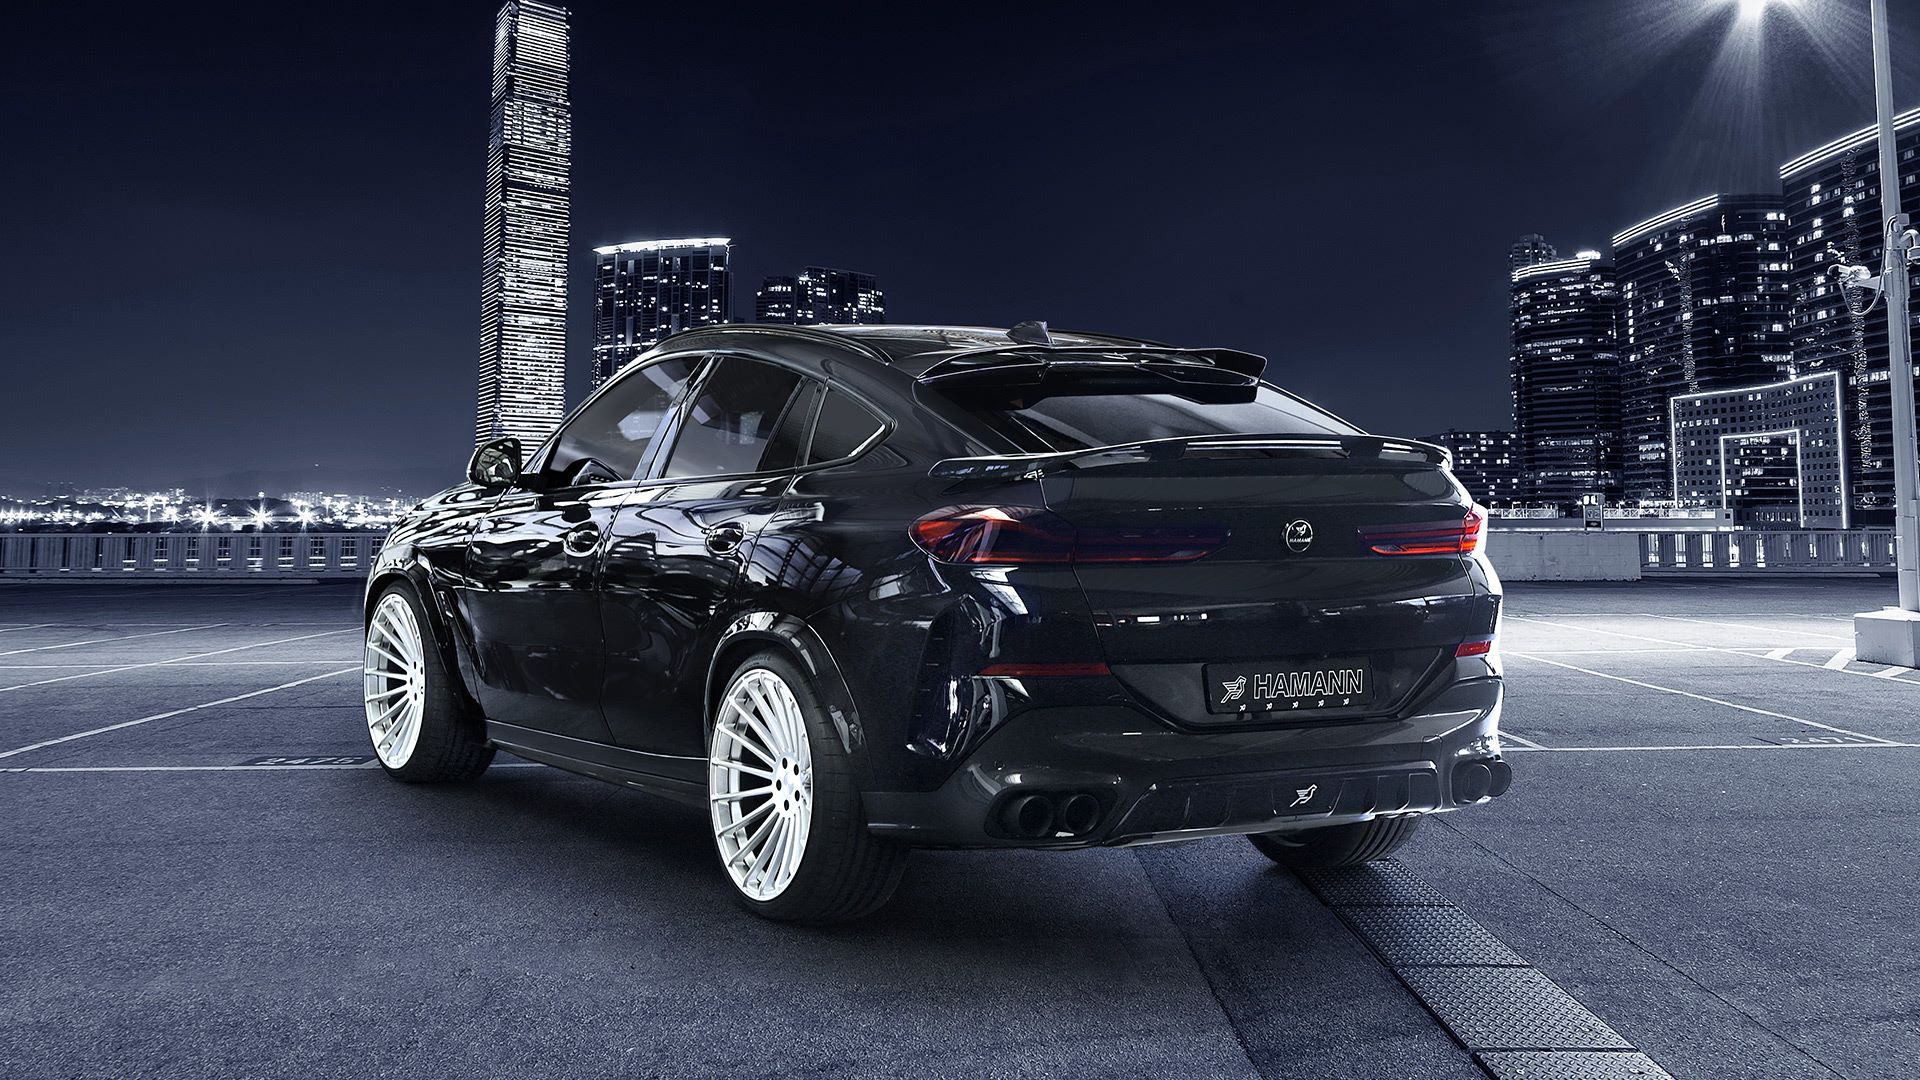 BMW-X6-by-Hamann-2